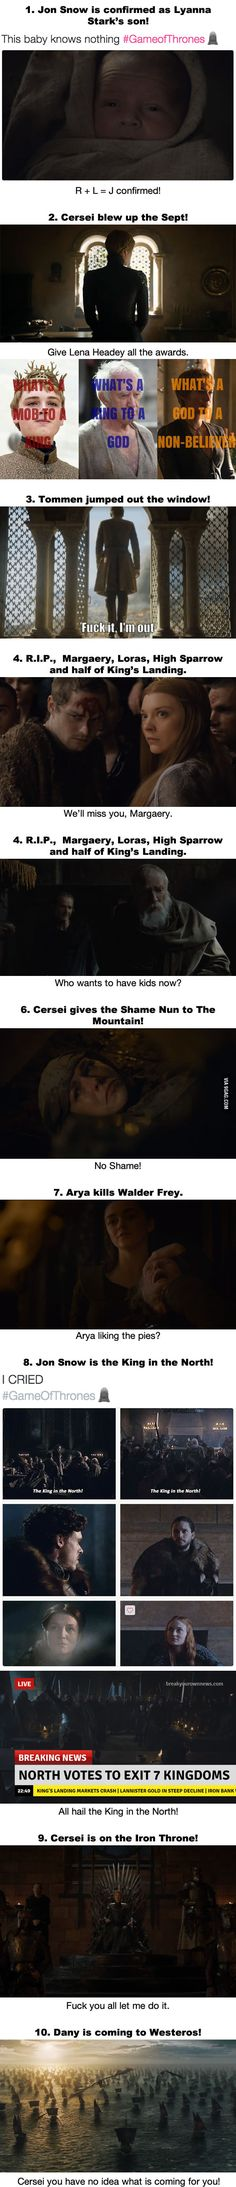 10 Most OMG Moments From The Game Of Thrones Finale *SPOILER!*